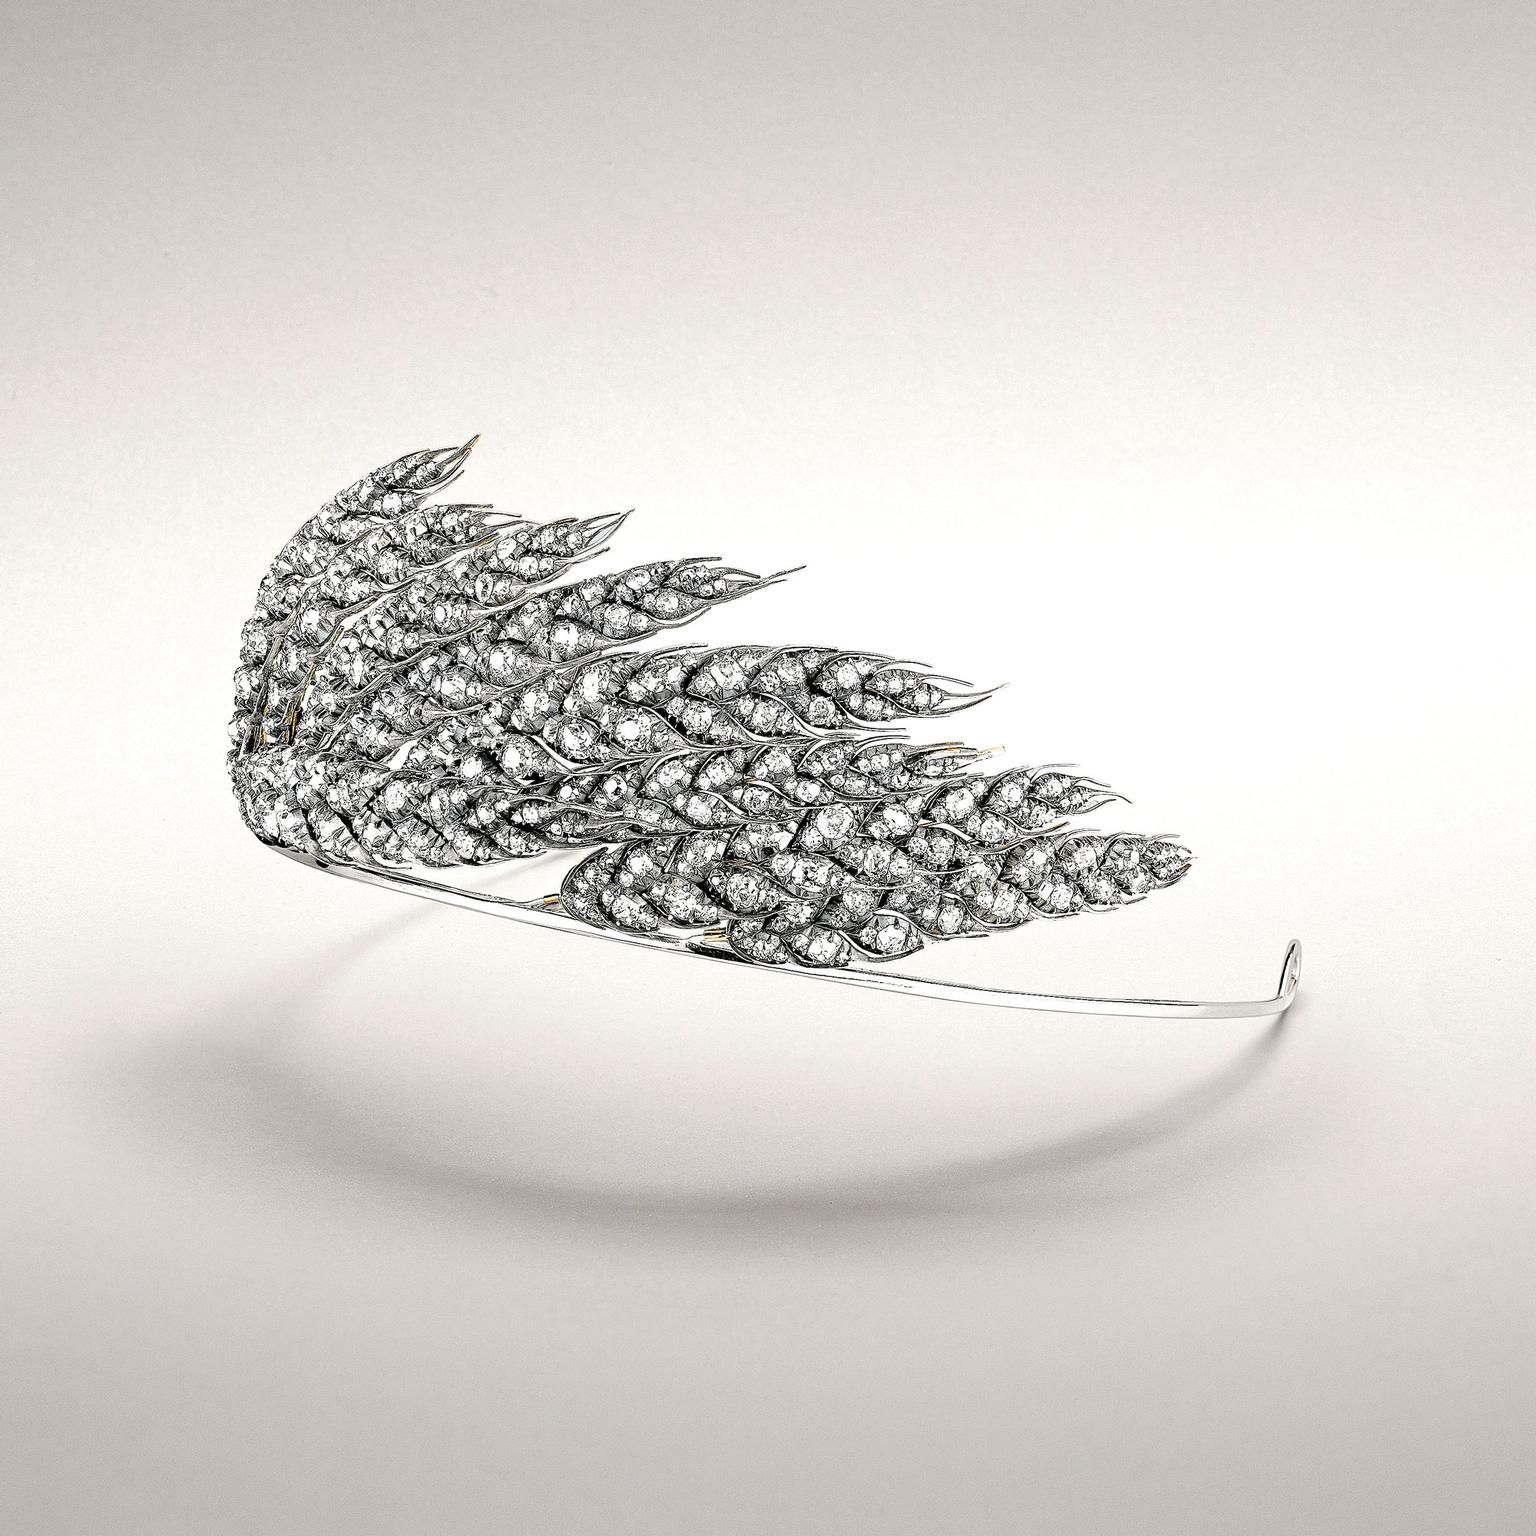 Chaumet wheat sheaf tiara